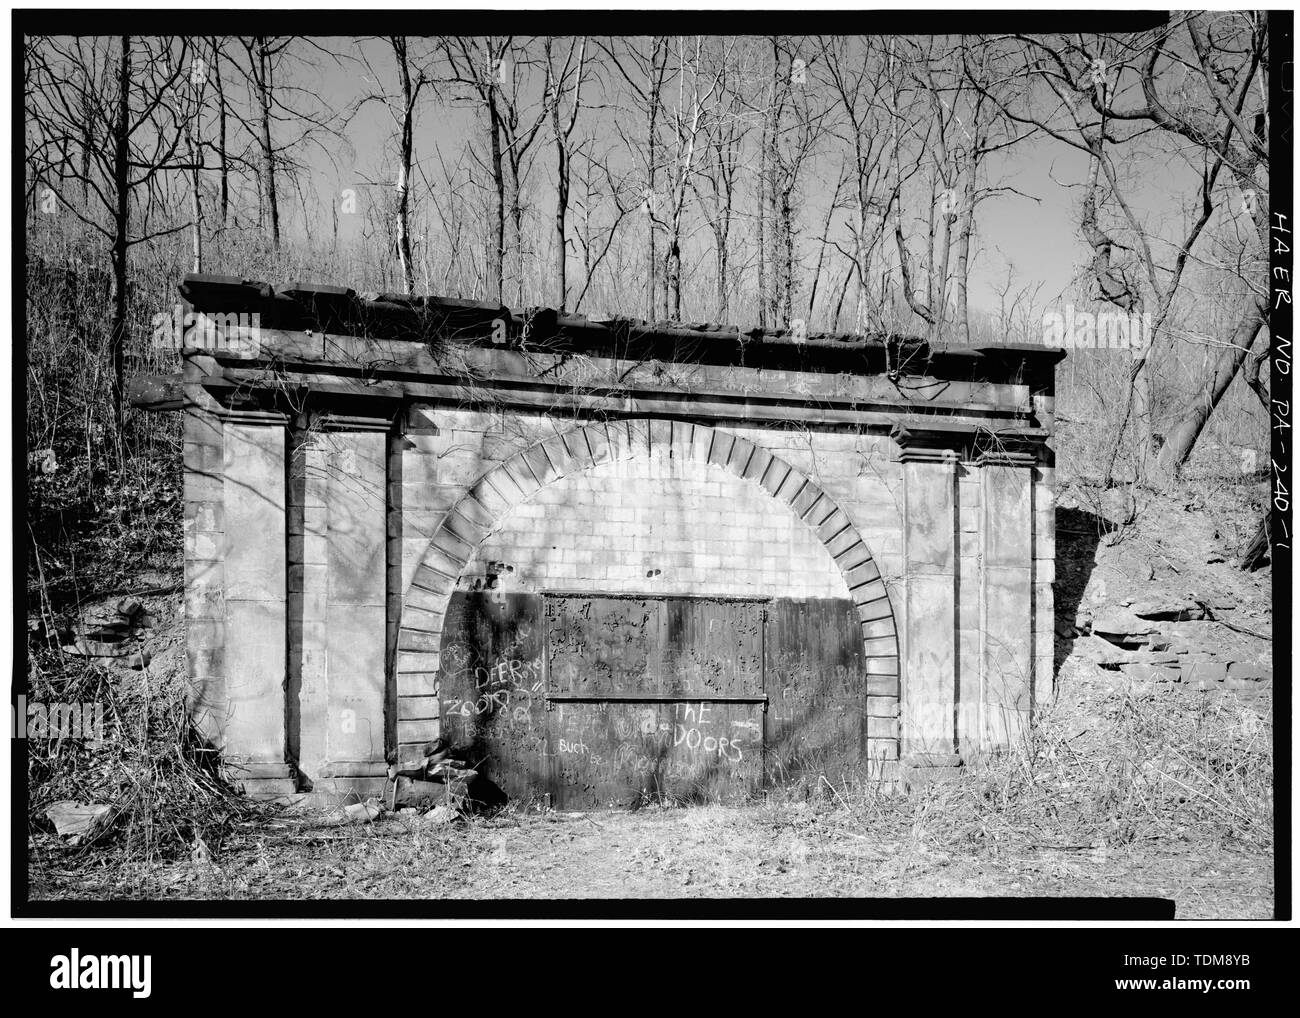 PERSPECTIVE VIEW OF SOUTH PORTAL - Allegheny Portage Railroad, Staple Bend Tunnel, Conemaugh Borough, East of Conrail Bridge, Geistown, Cambria County, PA Stock Photo